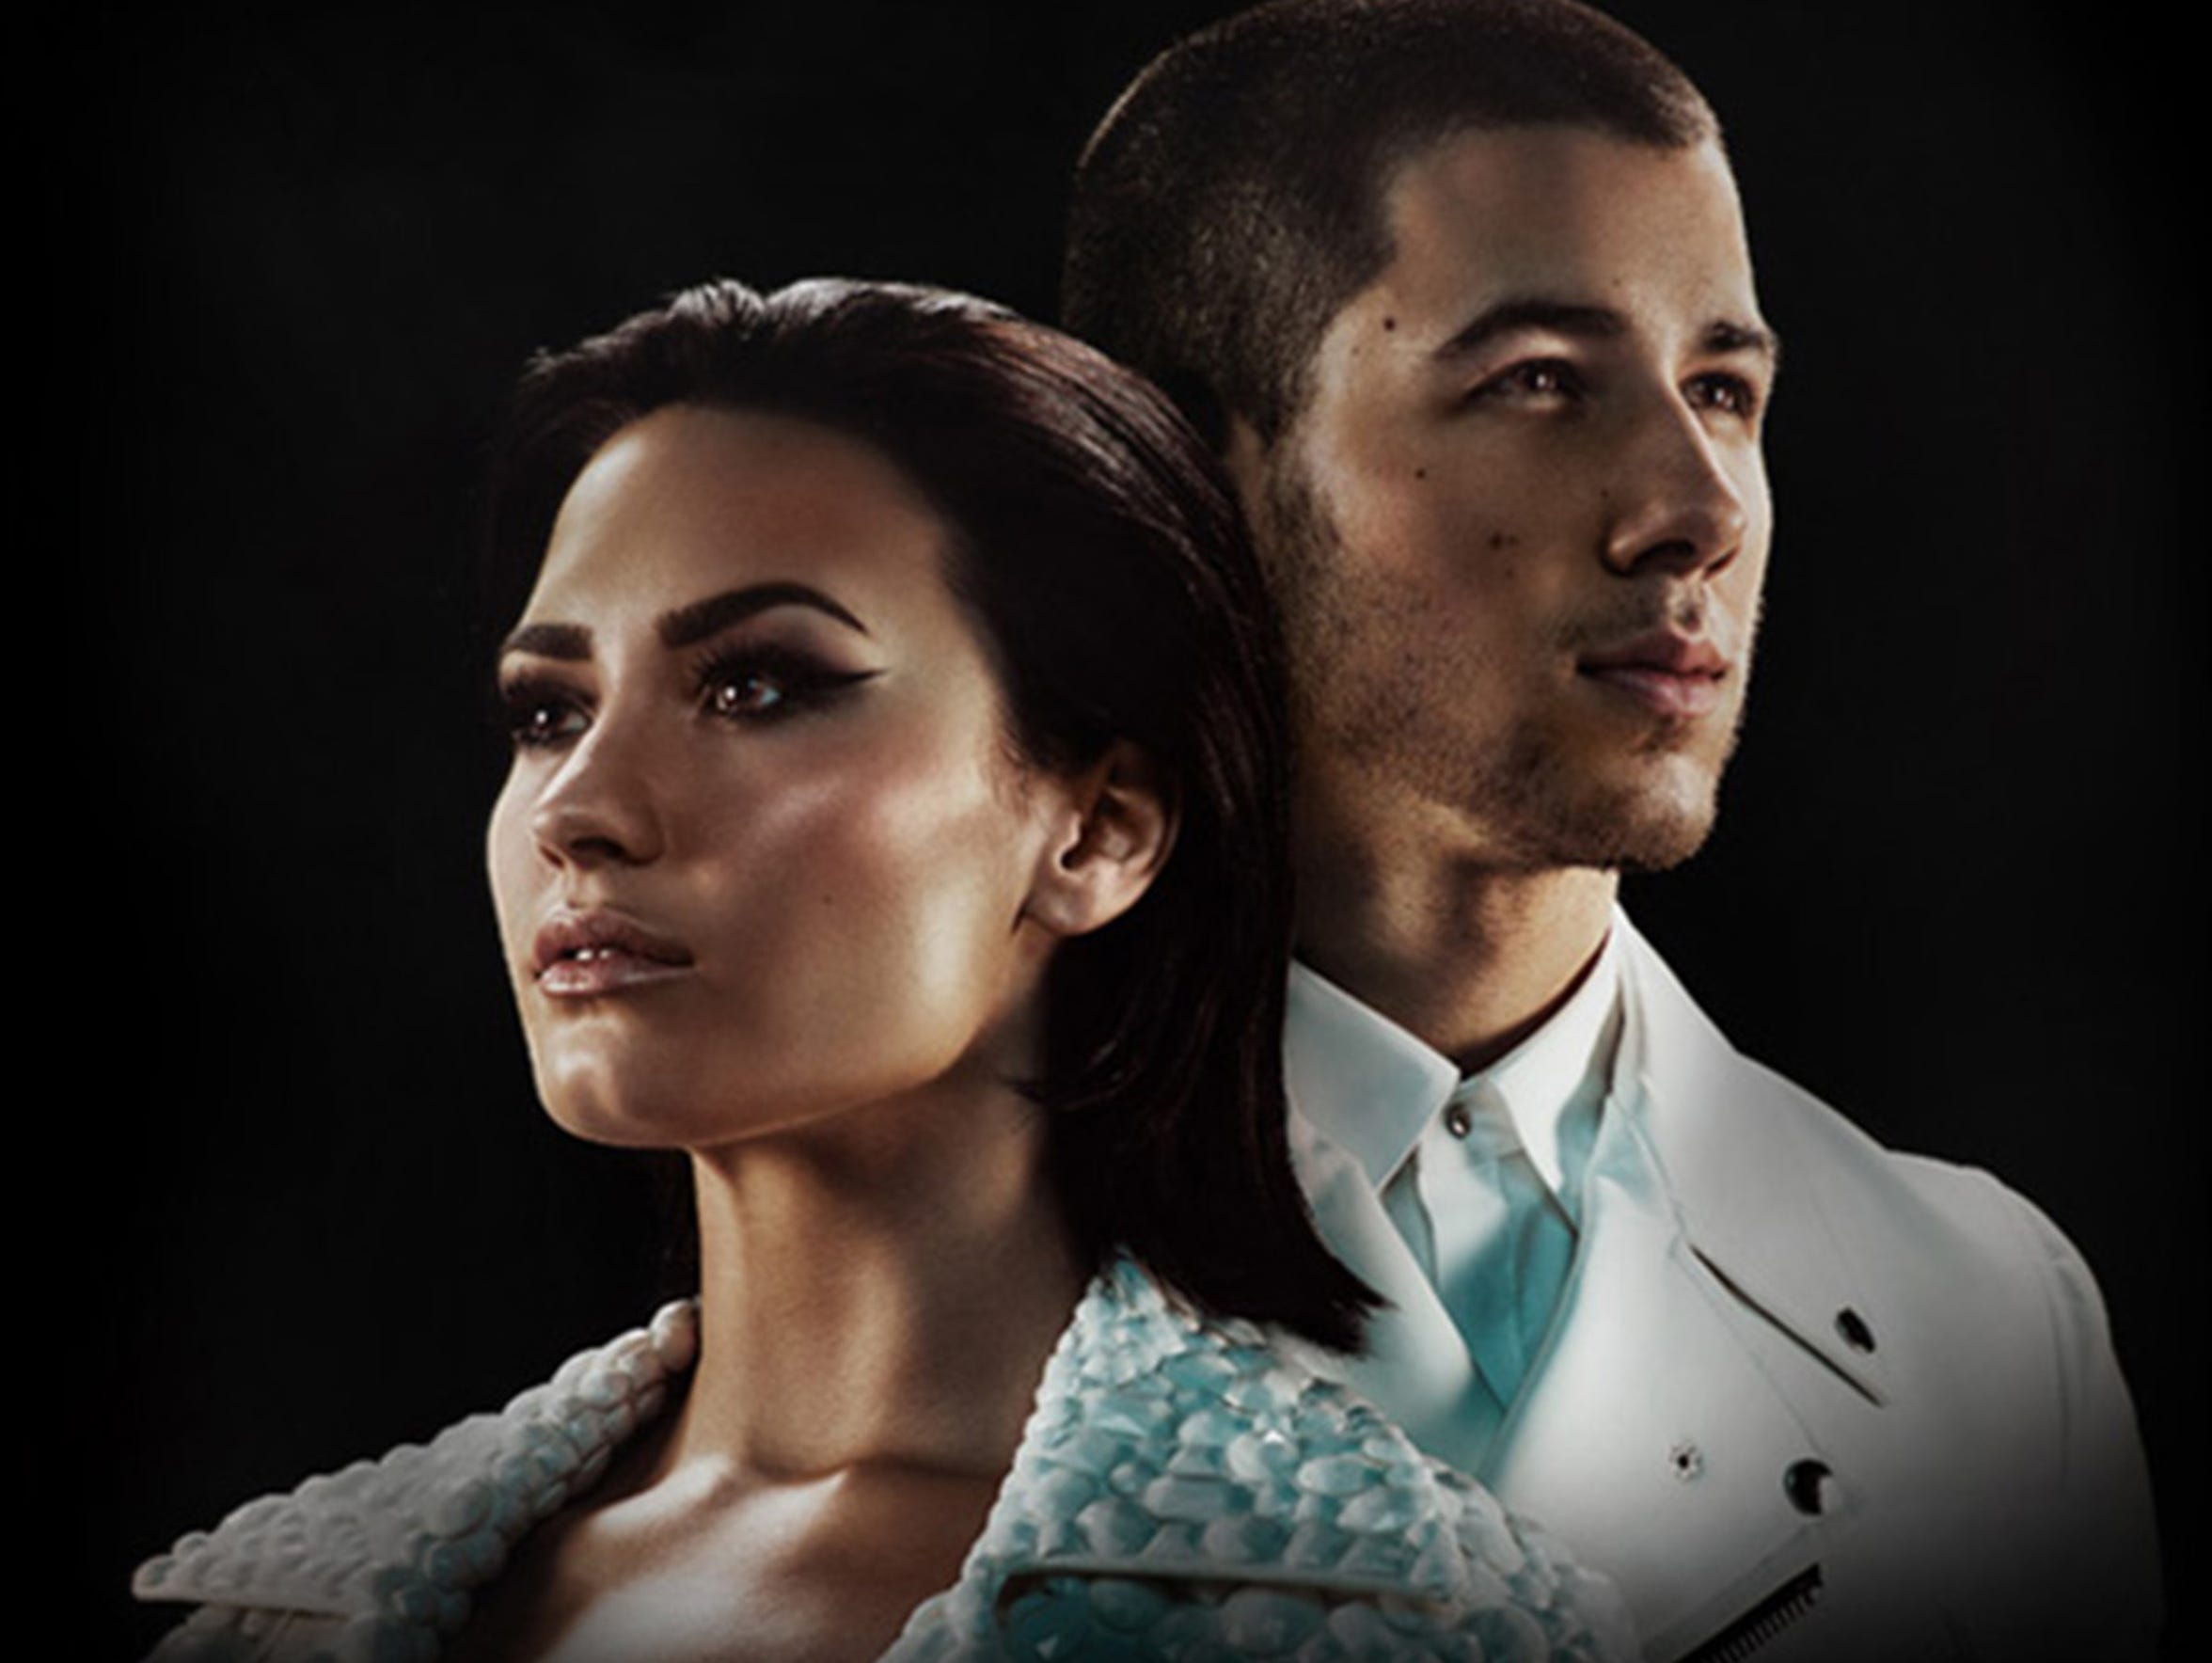 Pop sensations Demi Lovato and Nick Jonas join forces